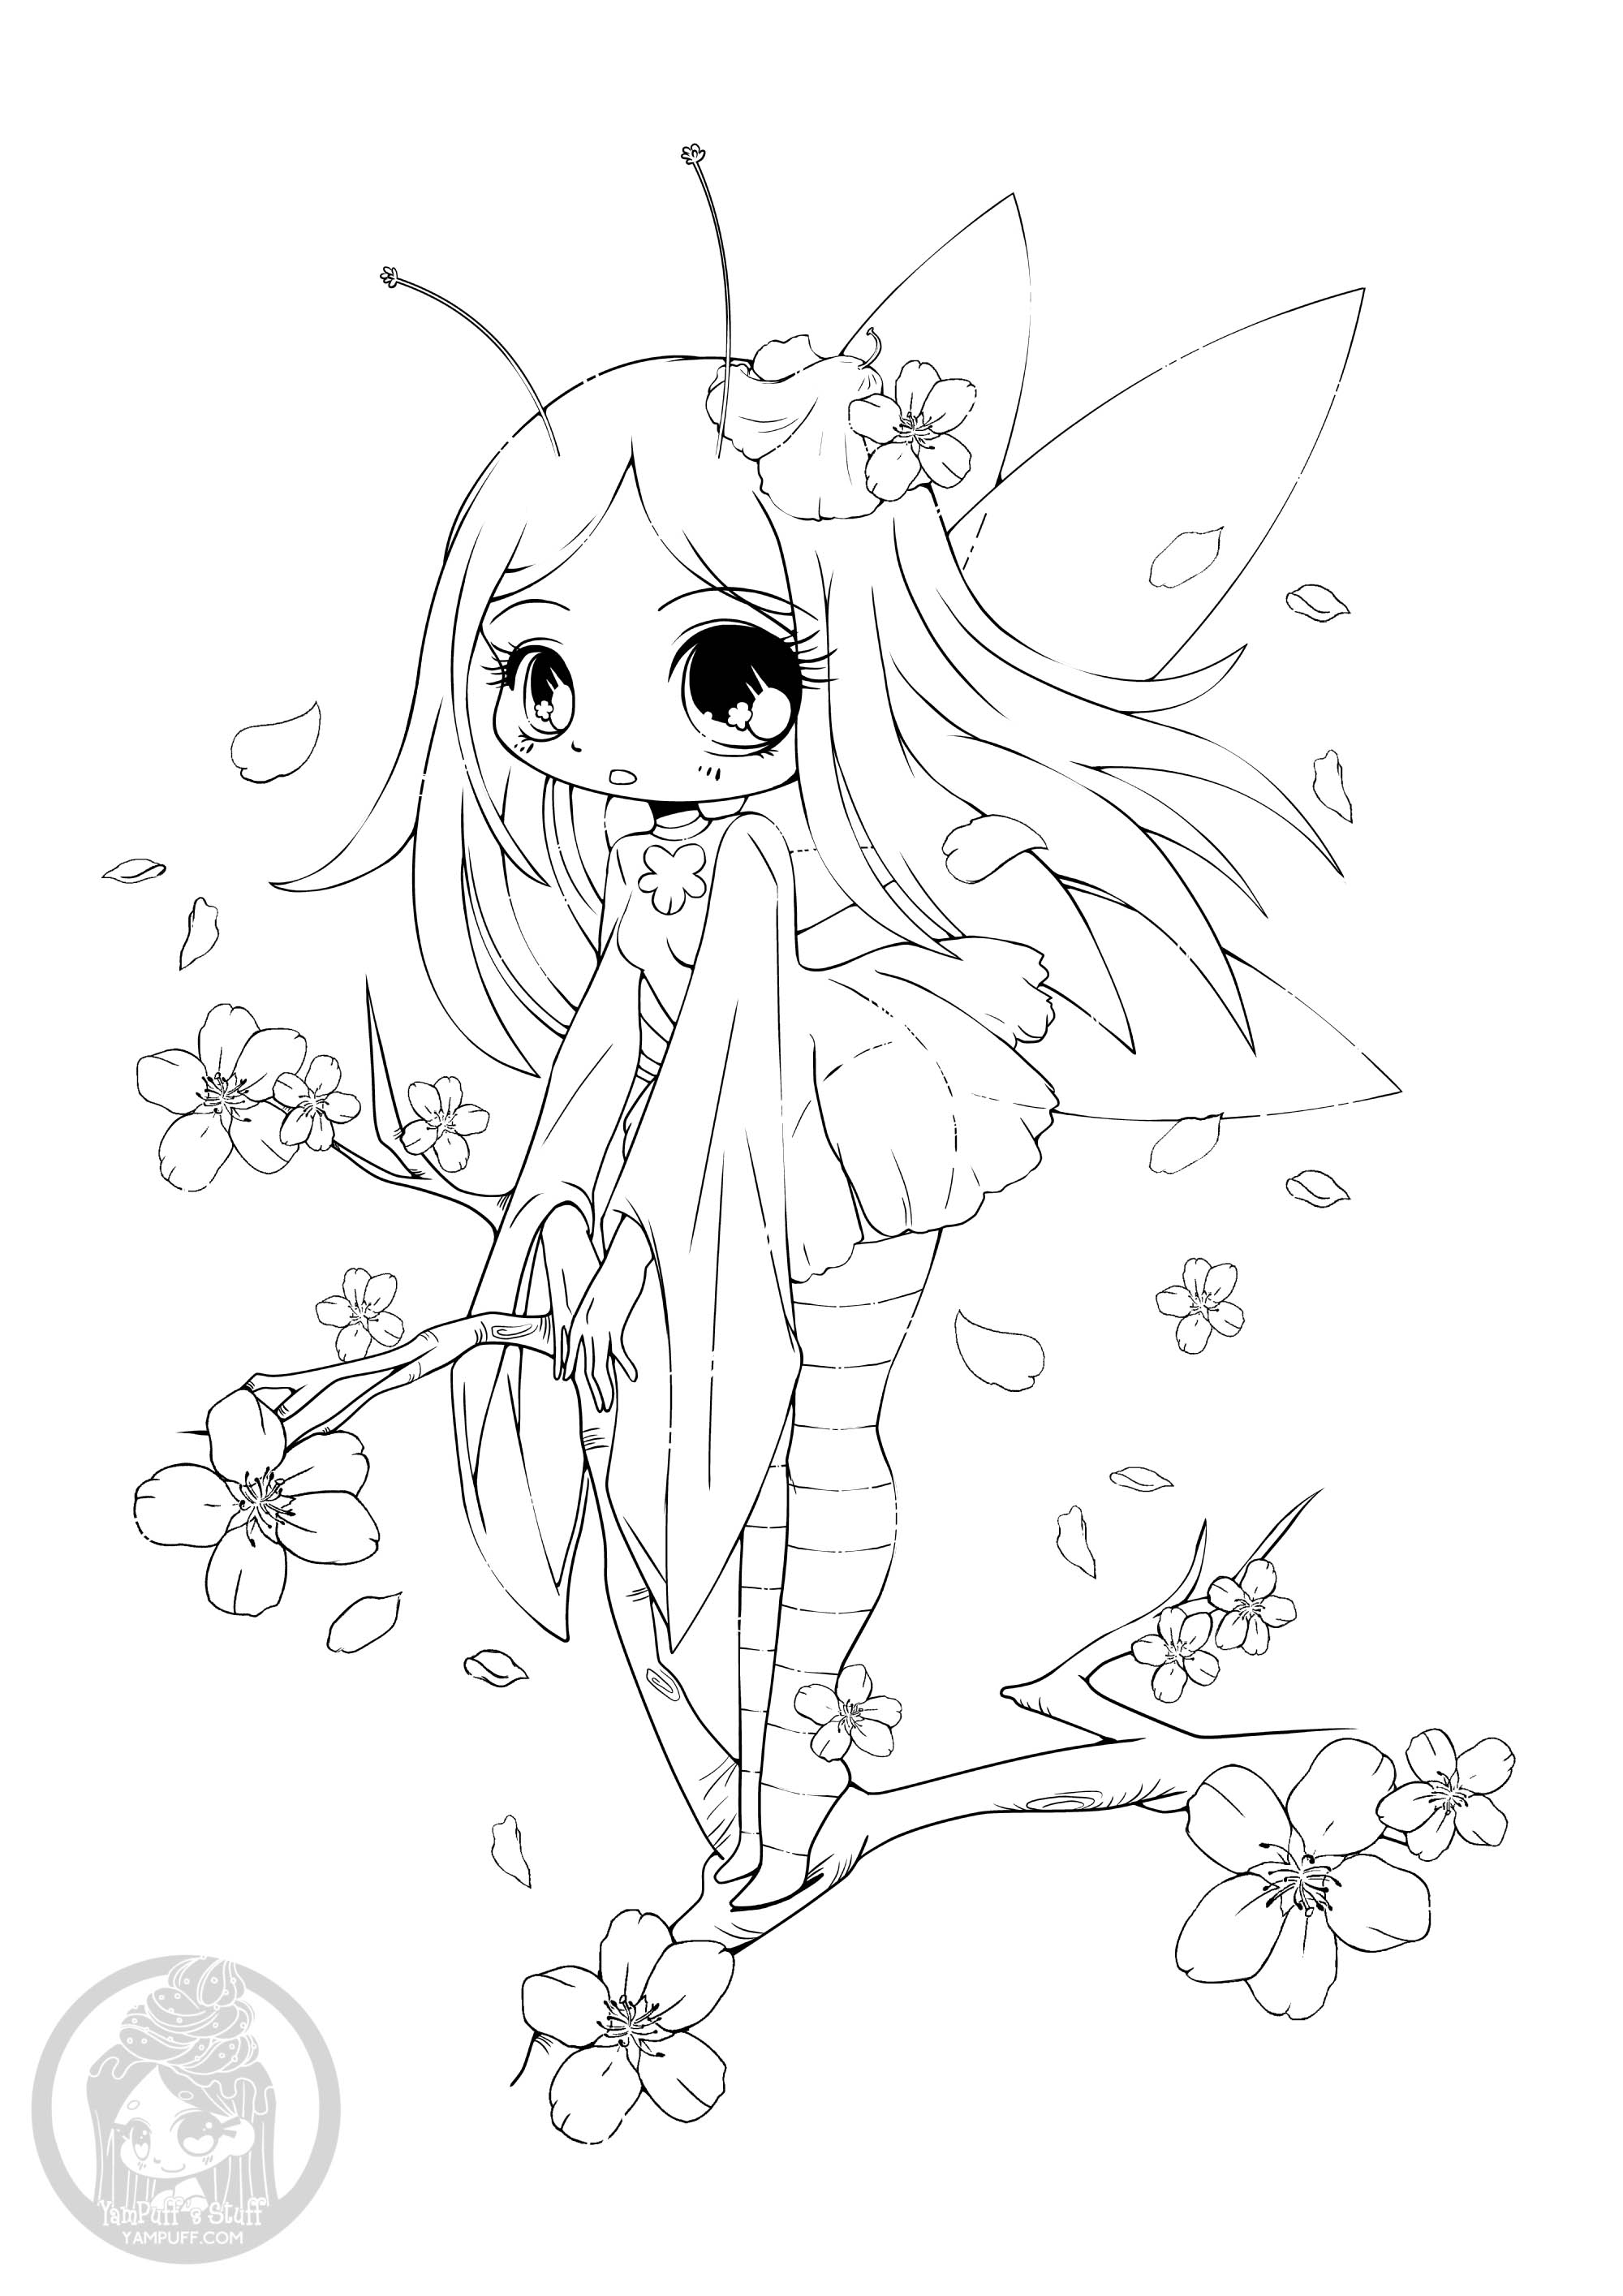 Kawaii For Children Kawaii Kids Coloring Pages